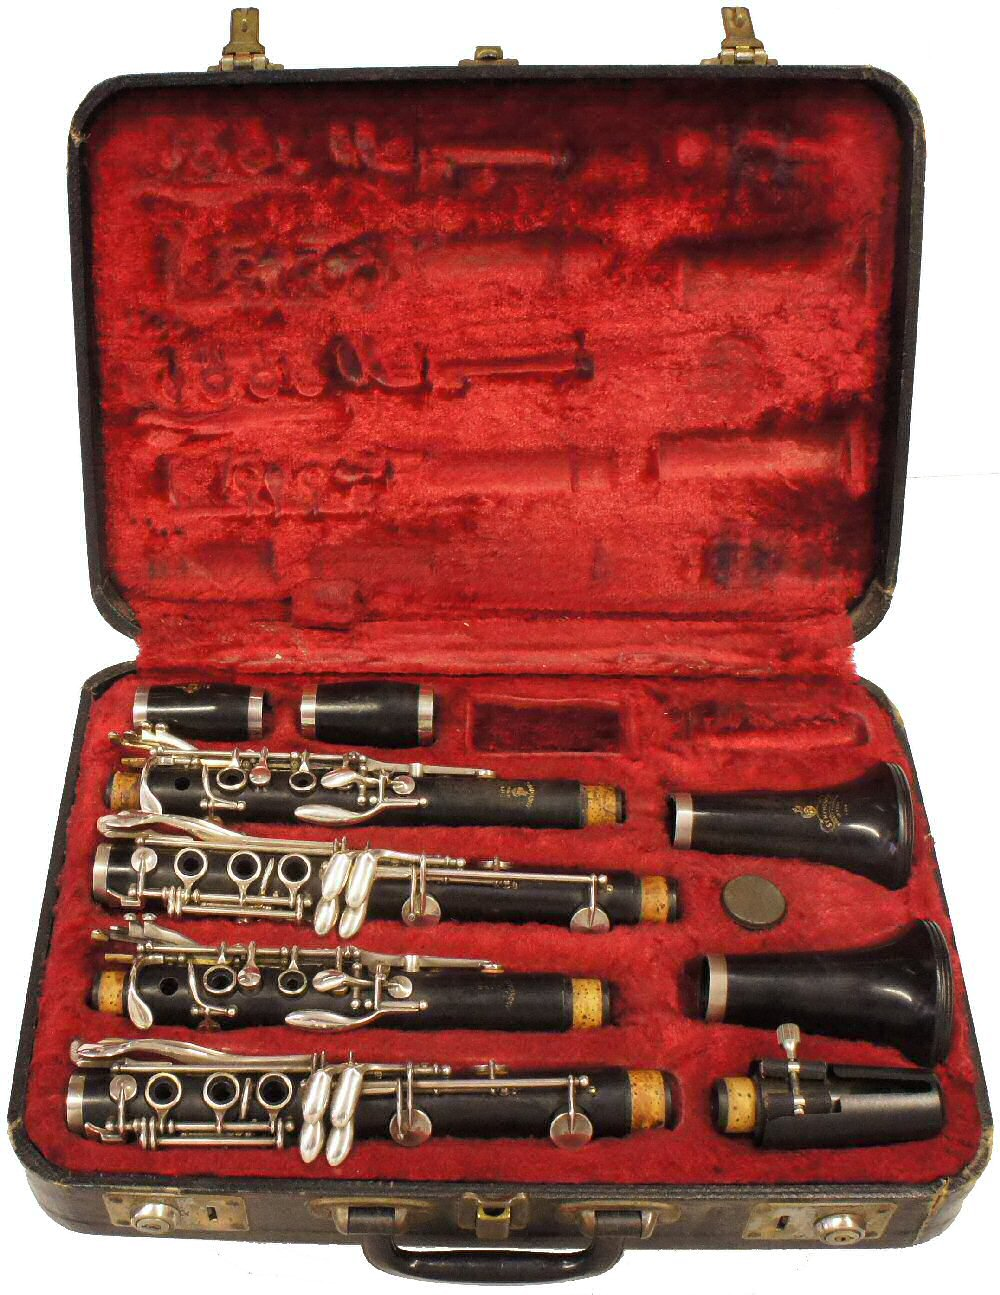 Pair of Boosey & Hawkes 1010 Clarinets